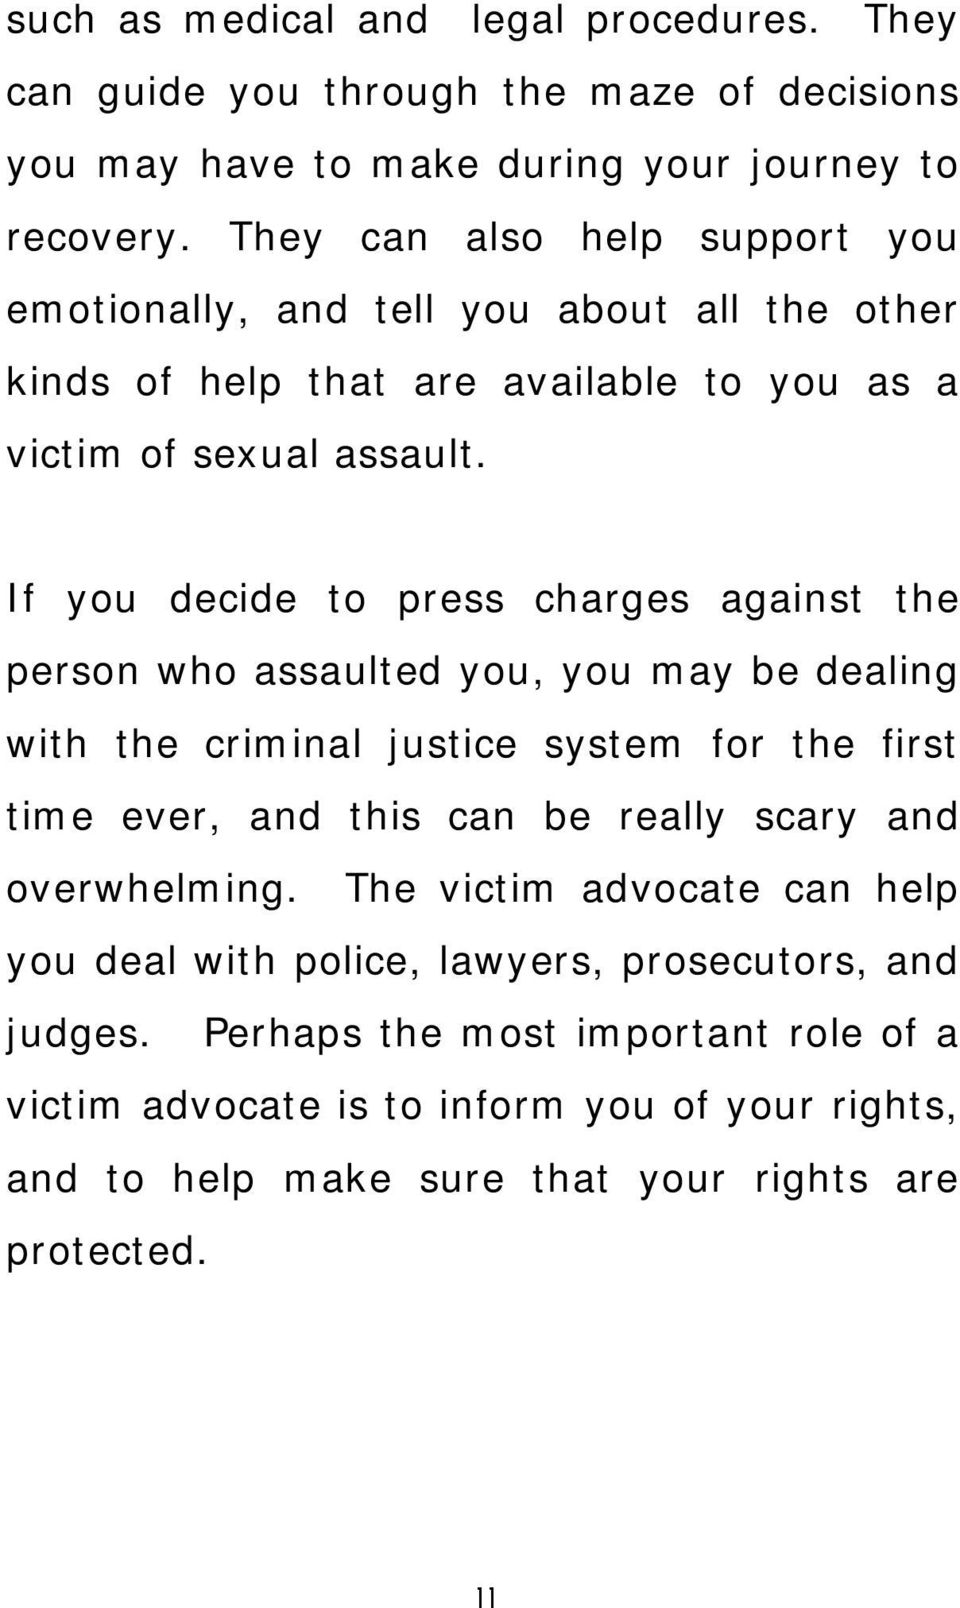 If you decide to press charges against the person who assaulted you, you may be dealing with the criminal justice system for the first time ever, and this can be really scary